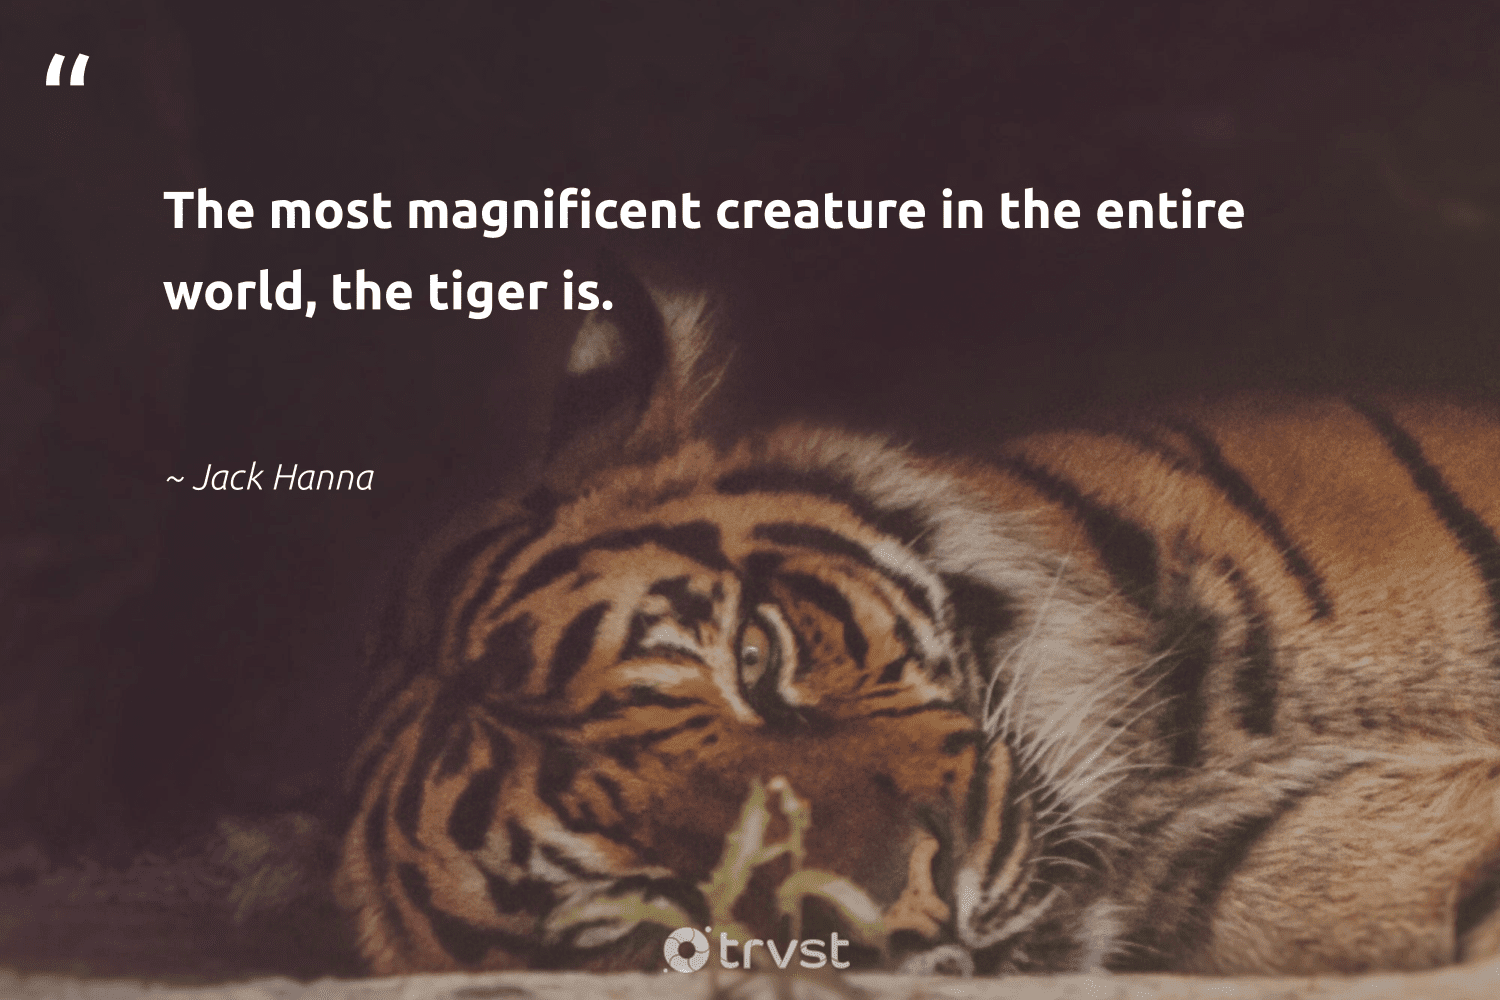 """""""The most magnificent creature in the entire world, the tiger is.""""  - Jack Hanna #trvst #quotes #tiger #tigers #gogreen #protectnature #collectiveaction #majesticwildlife #dosomething #ourplanetdaily #socialimpact #amazingworld"""